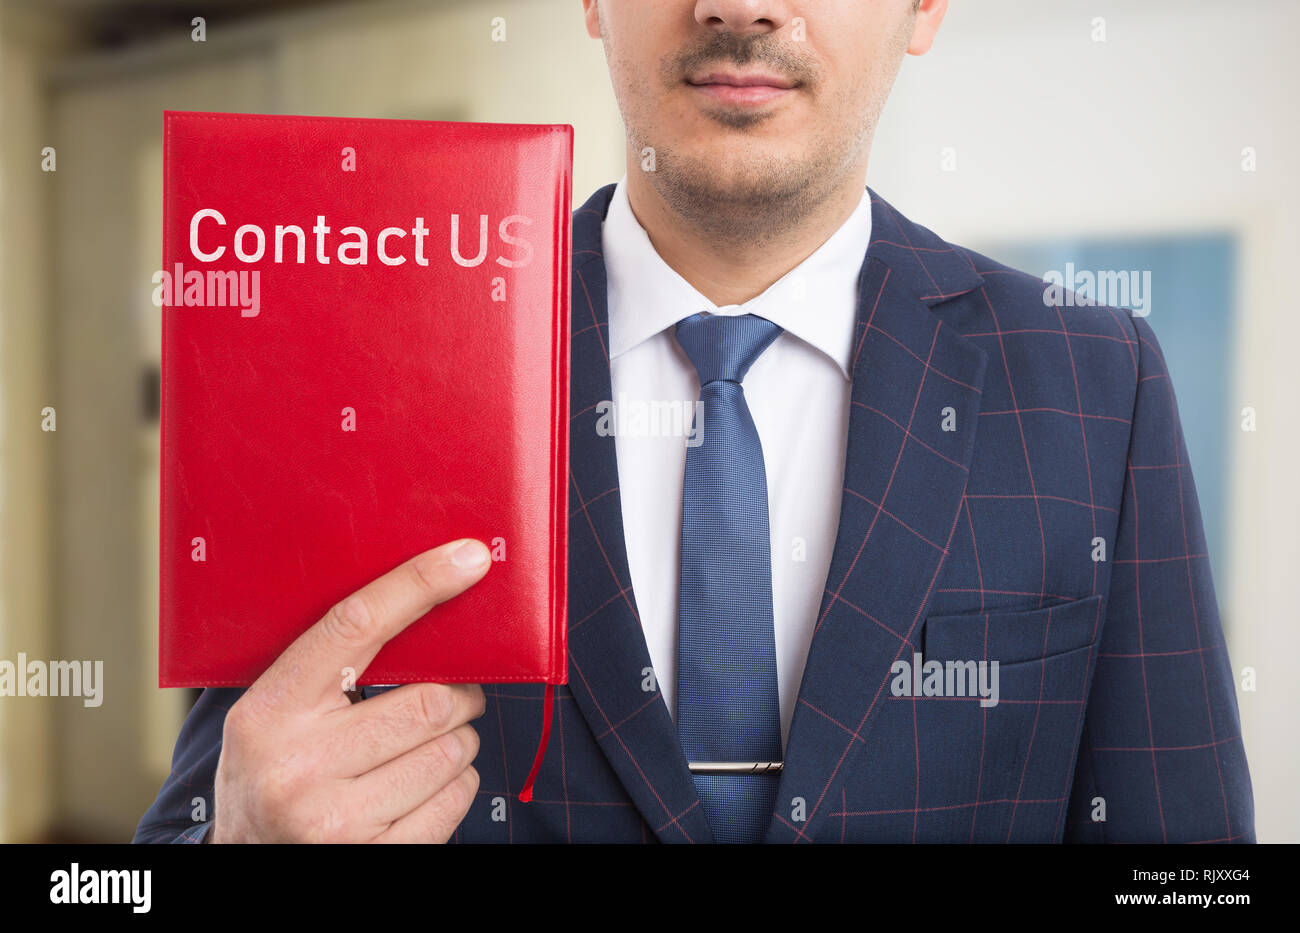 Businessman advertising communication services as holding with hand red notebook having contact us text on leather cover - Stock Image